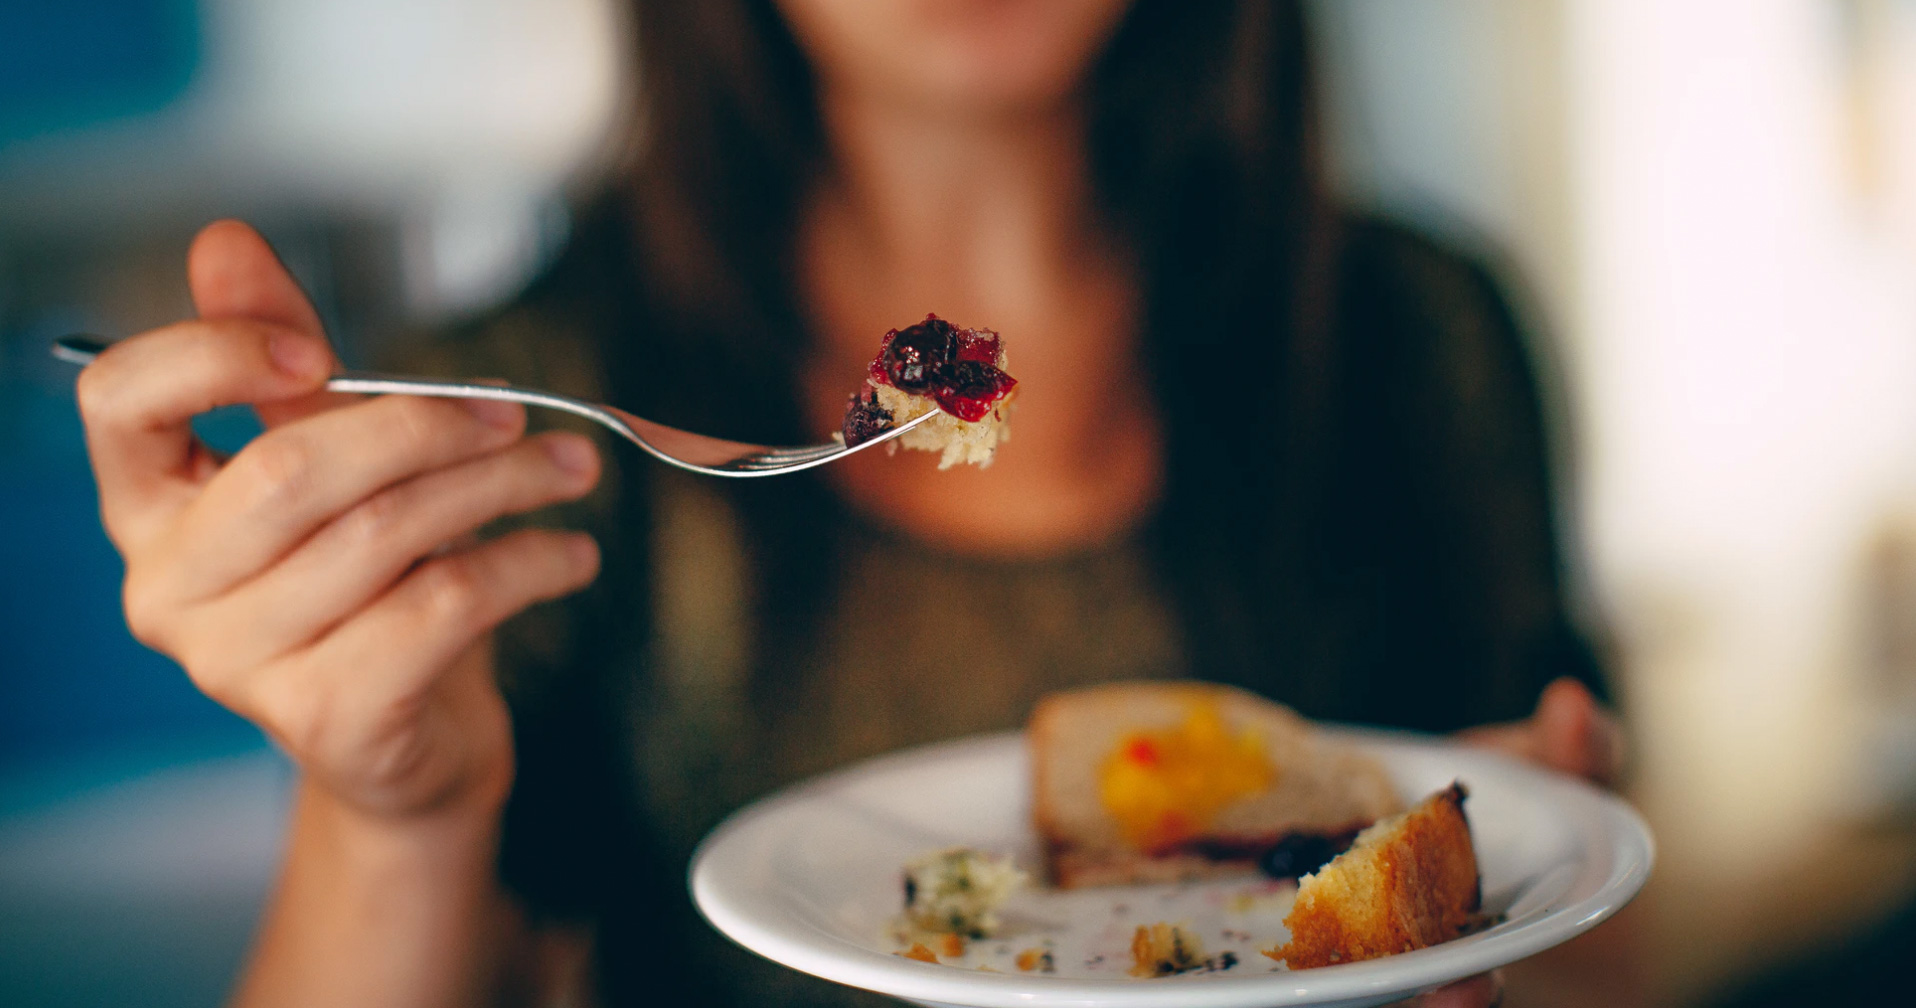 Woman with fork in her hand with food. Unsplash: Helena Lopes